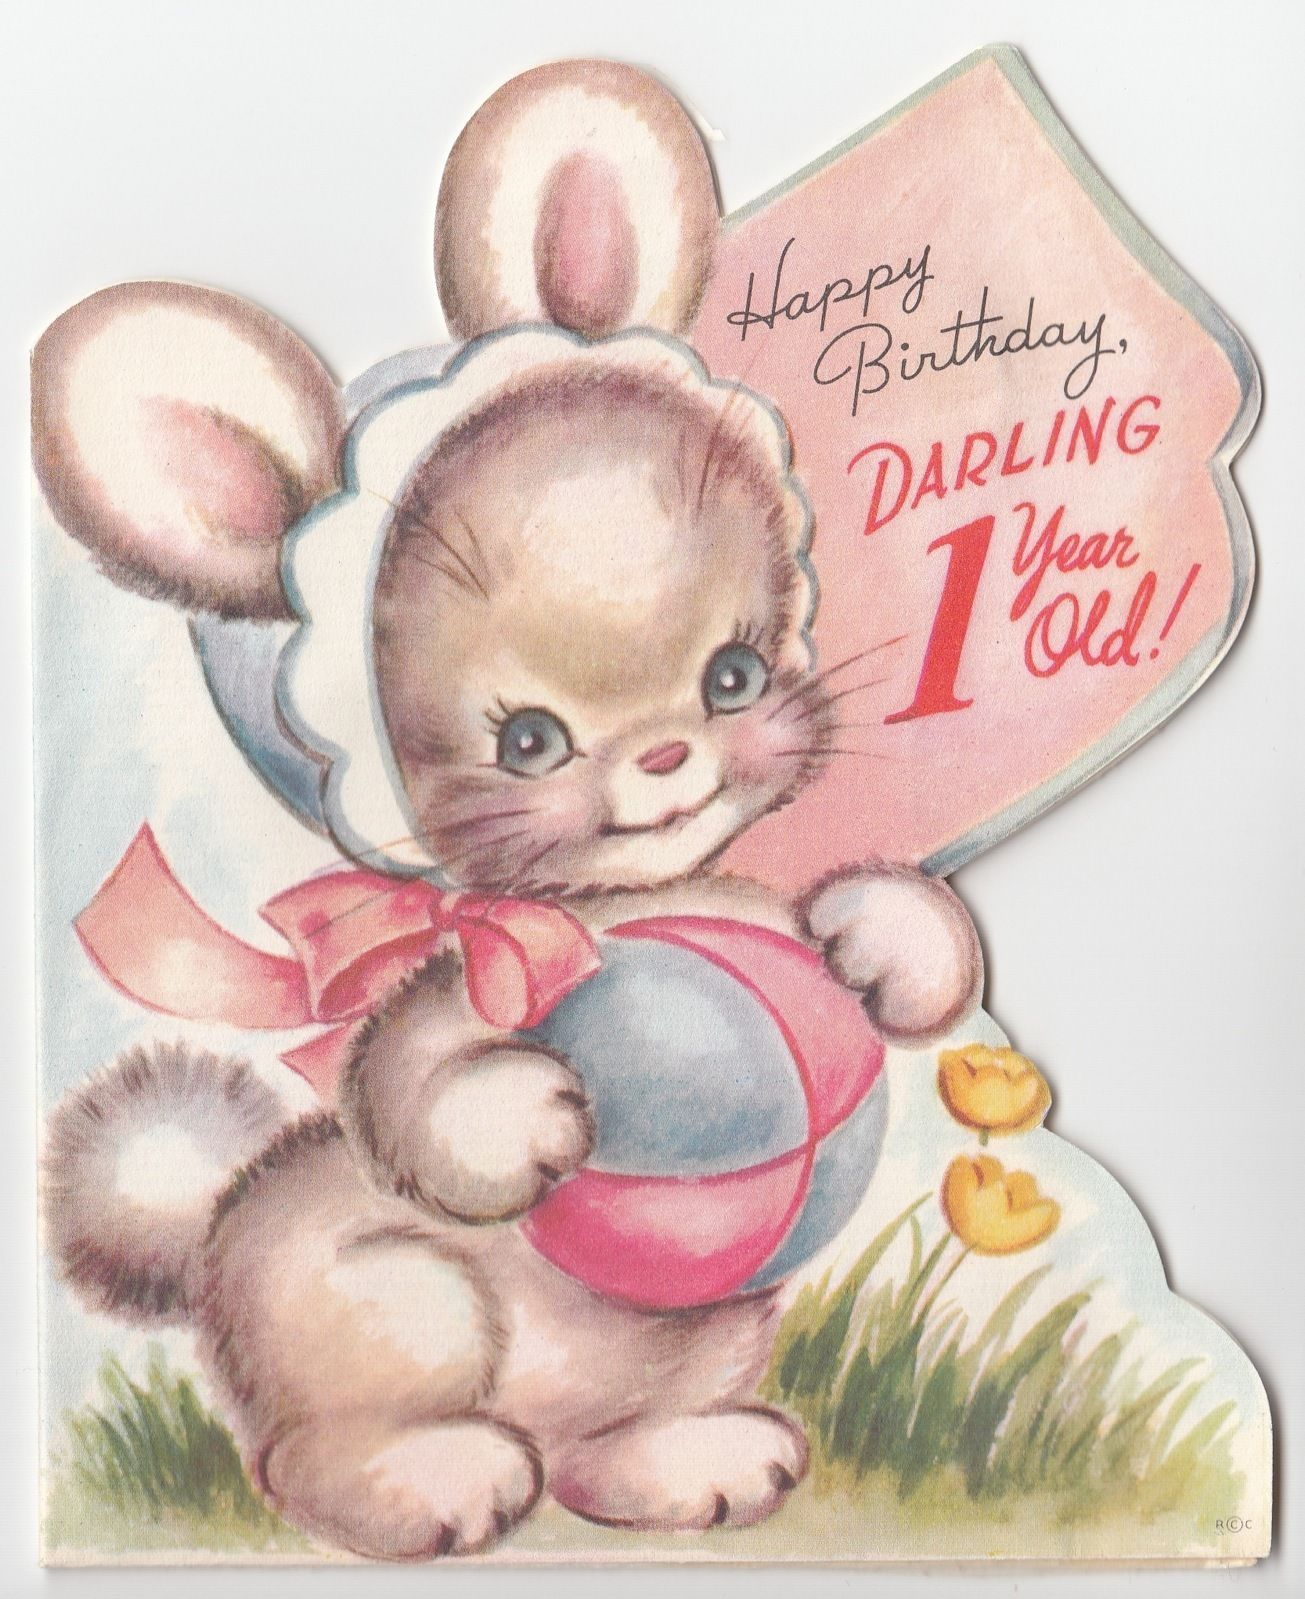 Vintage Greeting Card Cute Bunny Rabbit Dime Holder 1 Year Old 1st